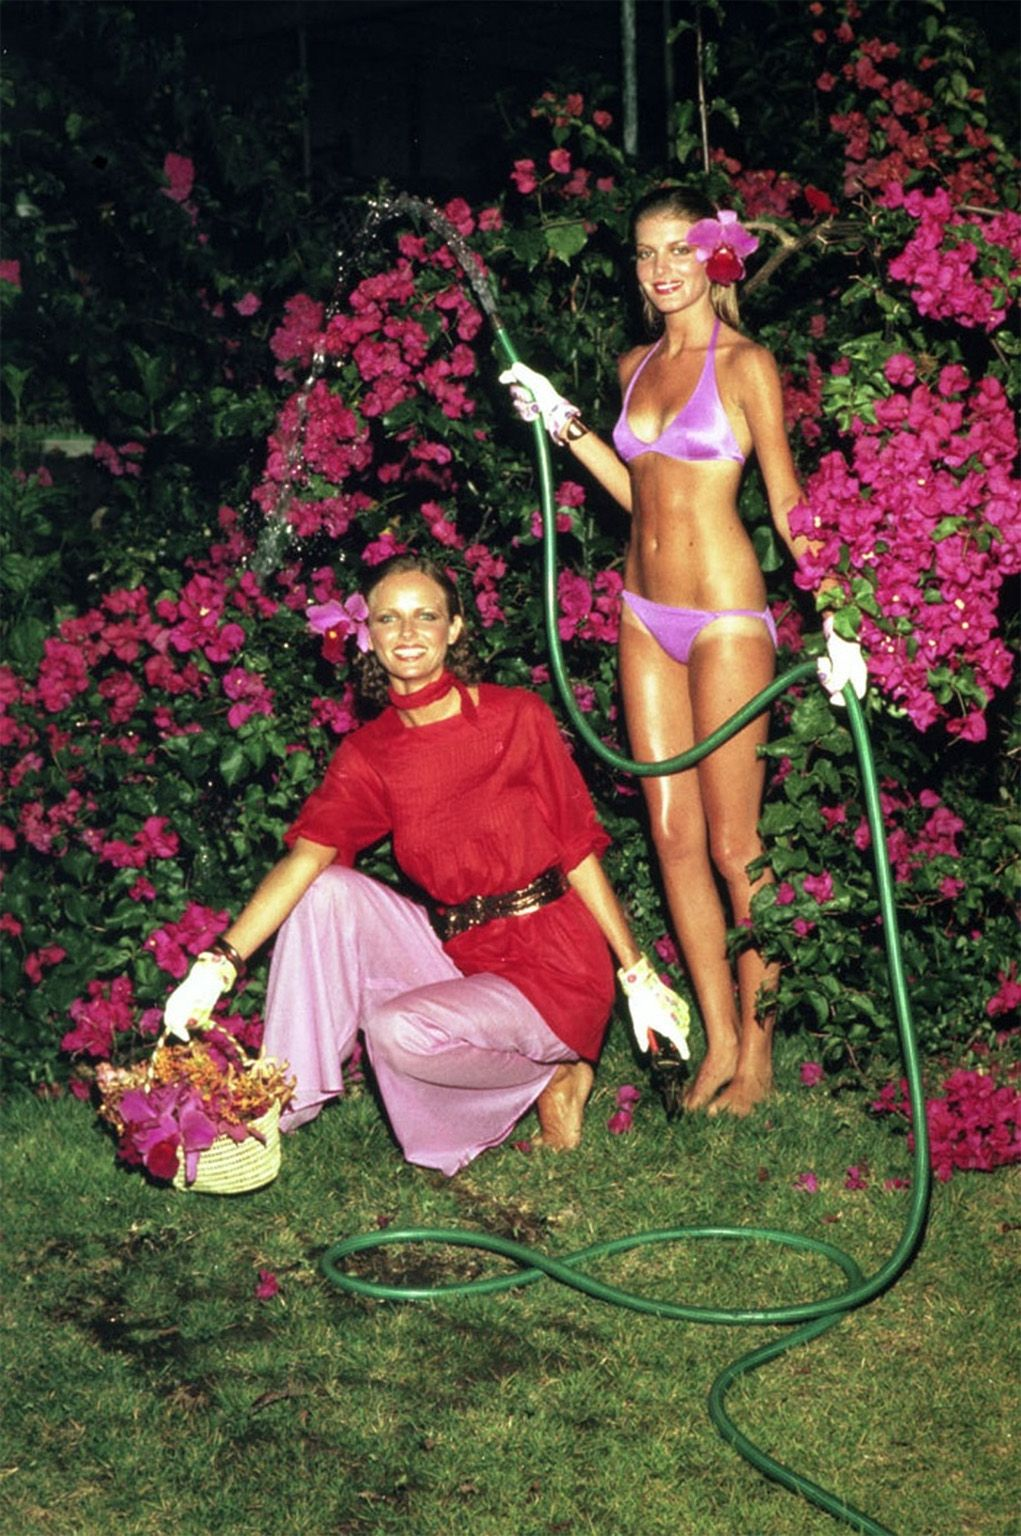 ls model ls island ls nude 10+ images about Cannes on Pinterest | Rene russo, Banana leaves and Pool parties